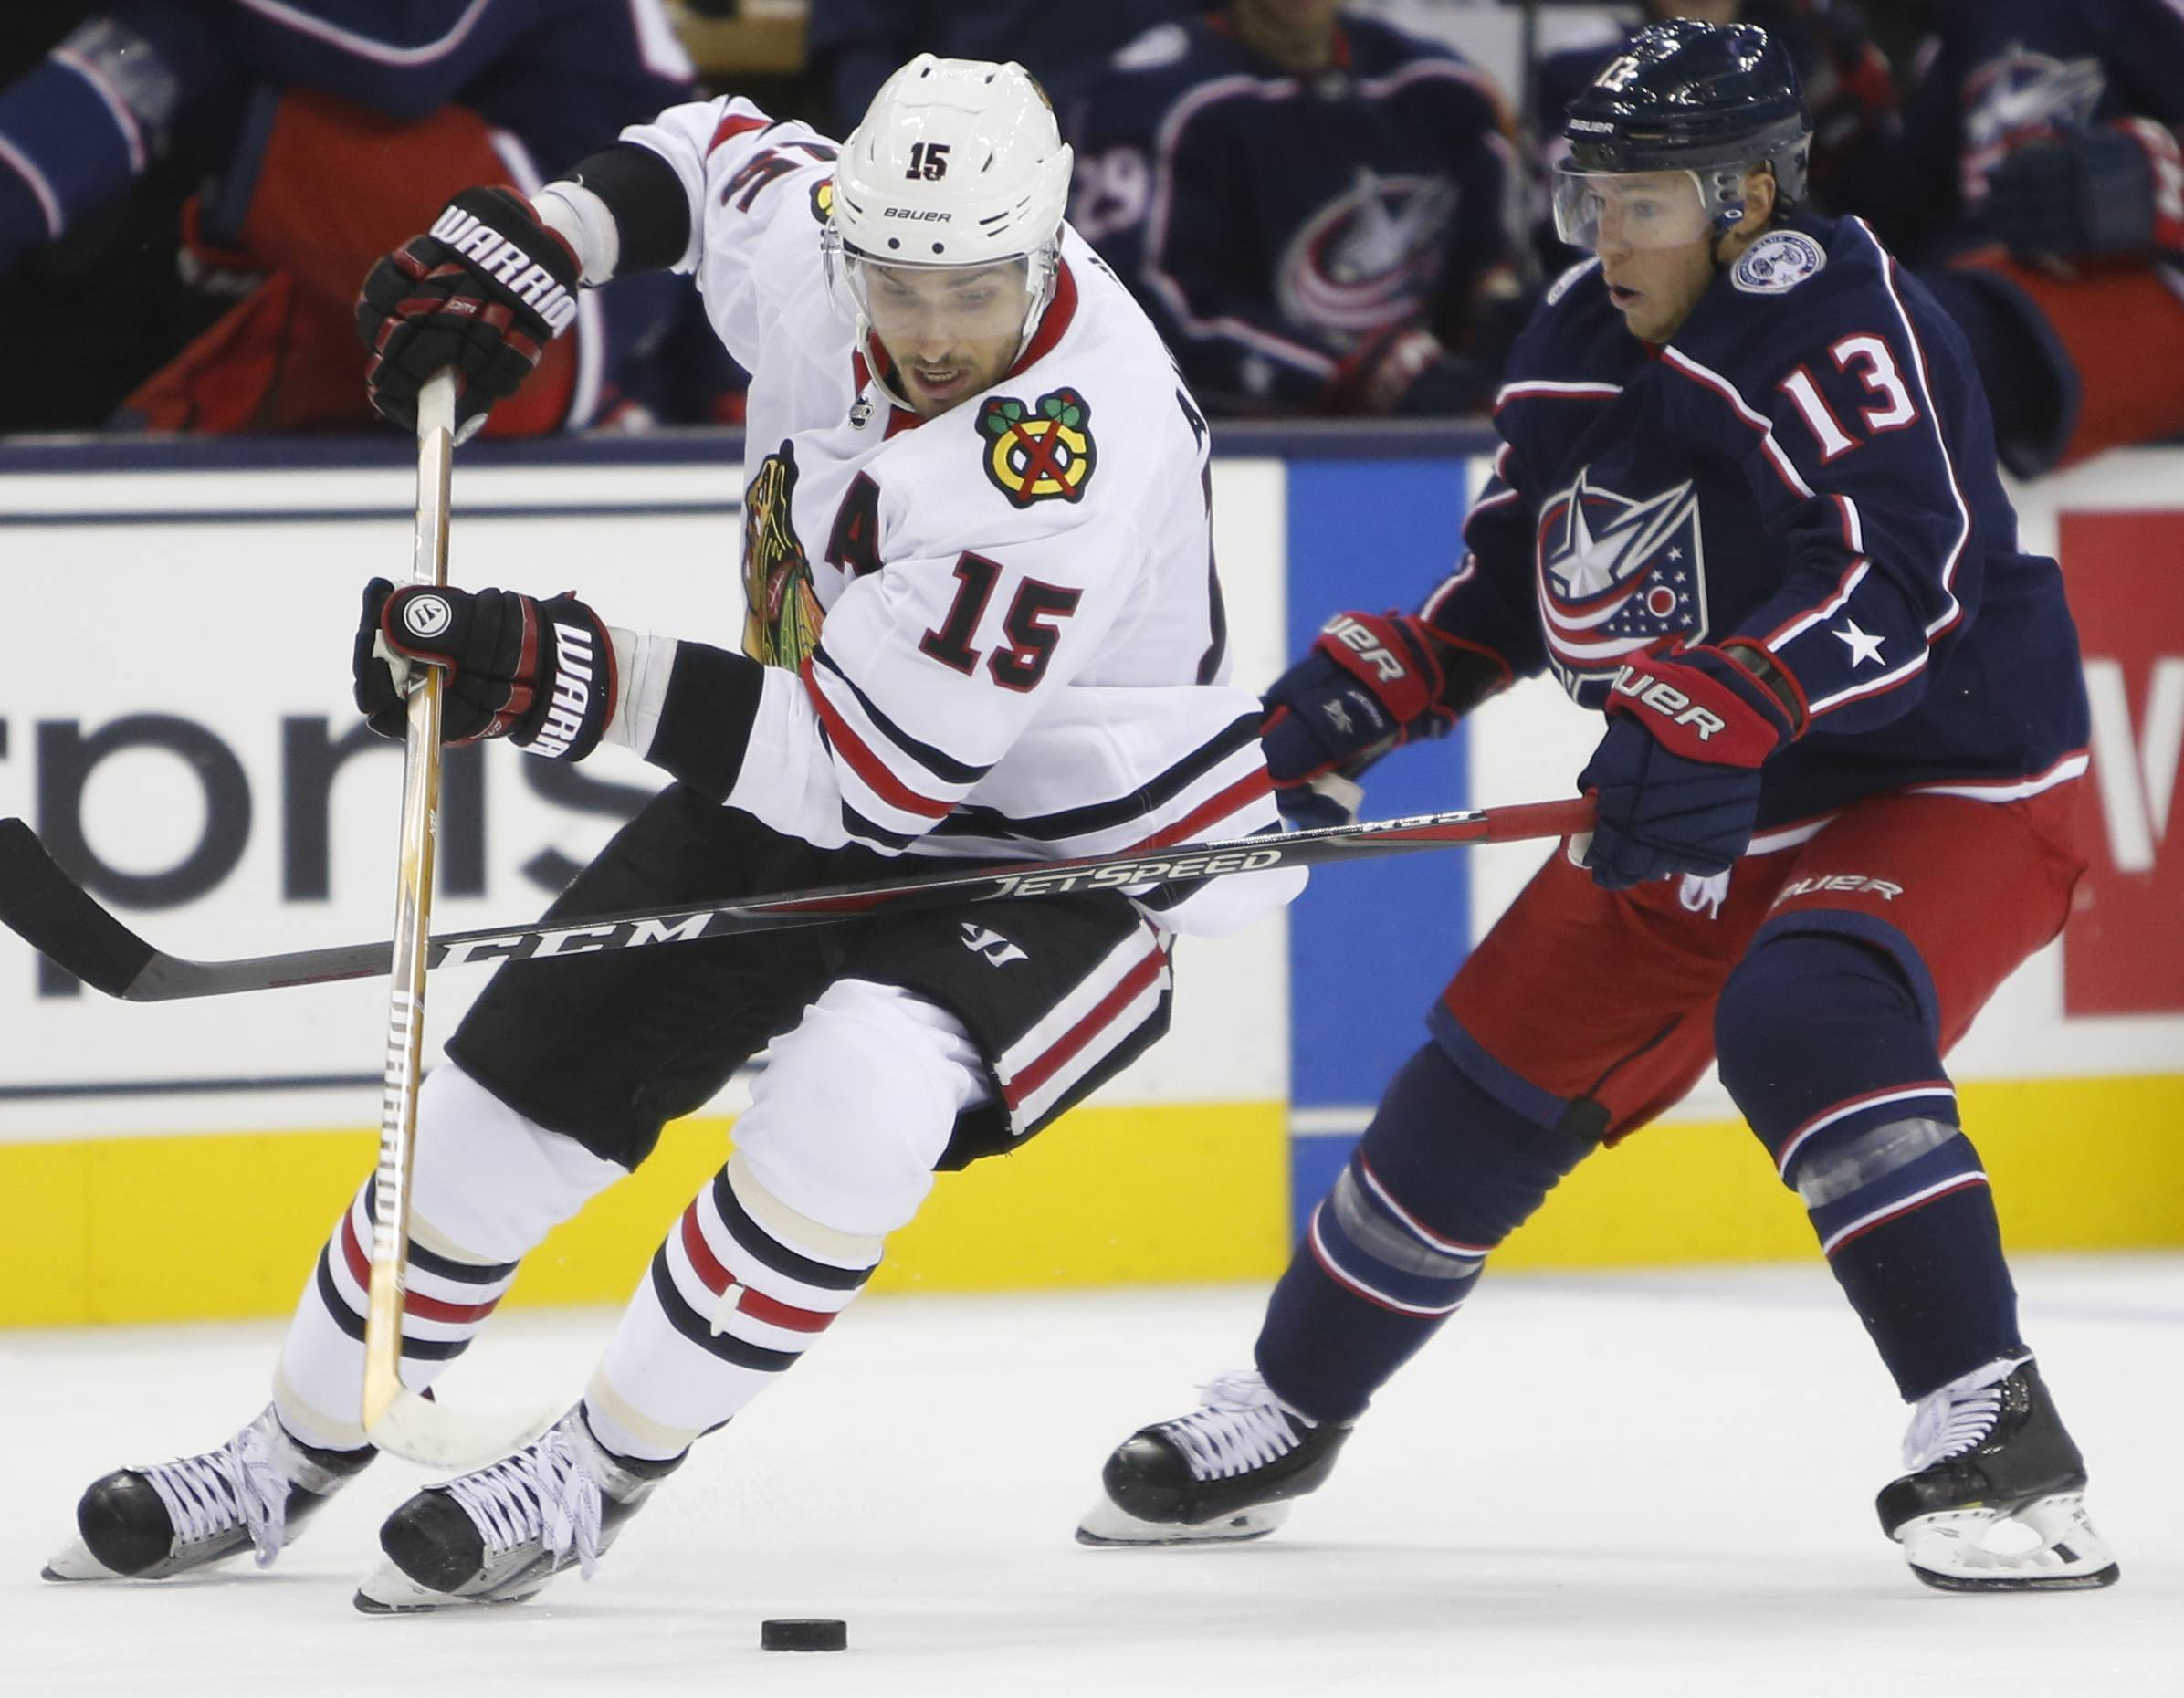 The Blackhawks' Artem Anisimov, playing earlier this season against the Columbus Blue Jackets' Cam Atkinson, didn't travel to Winnipeg Monday and remains in concussion protocol.